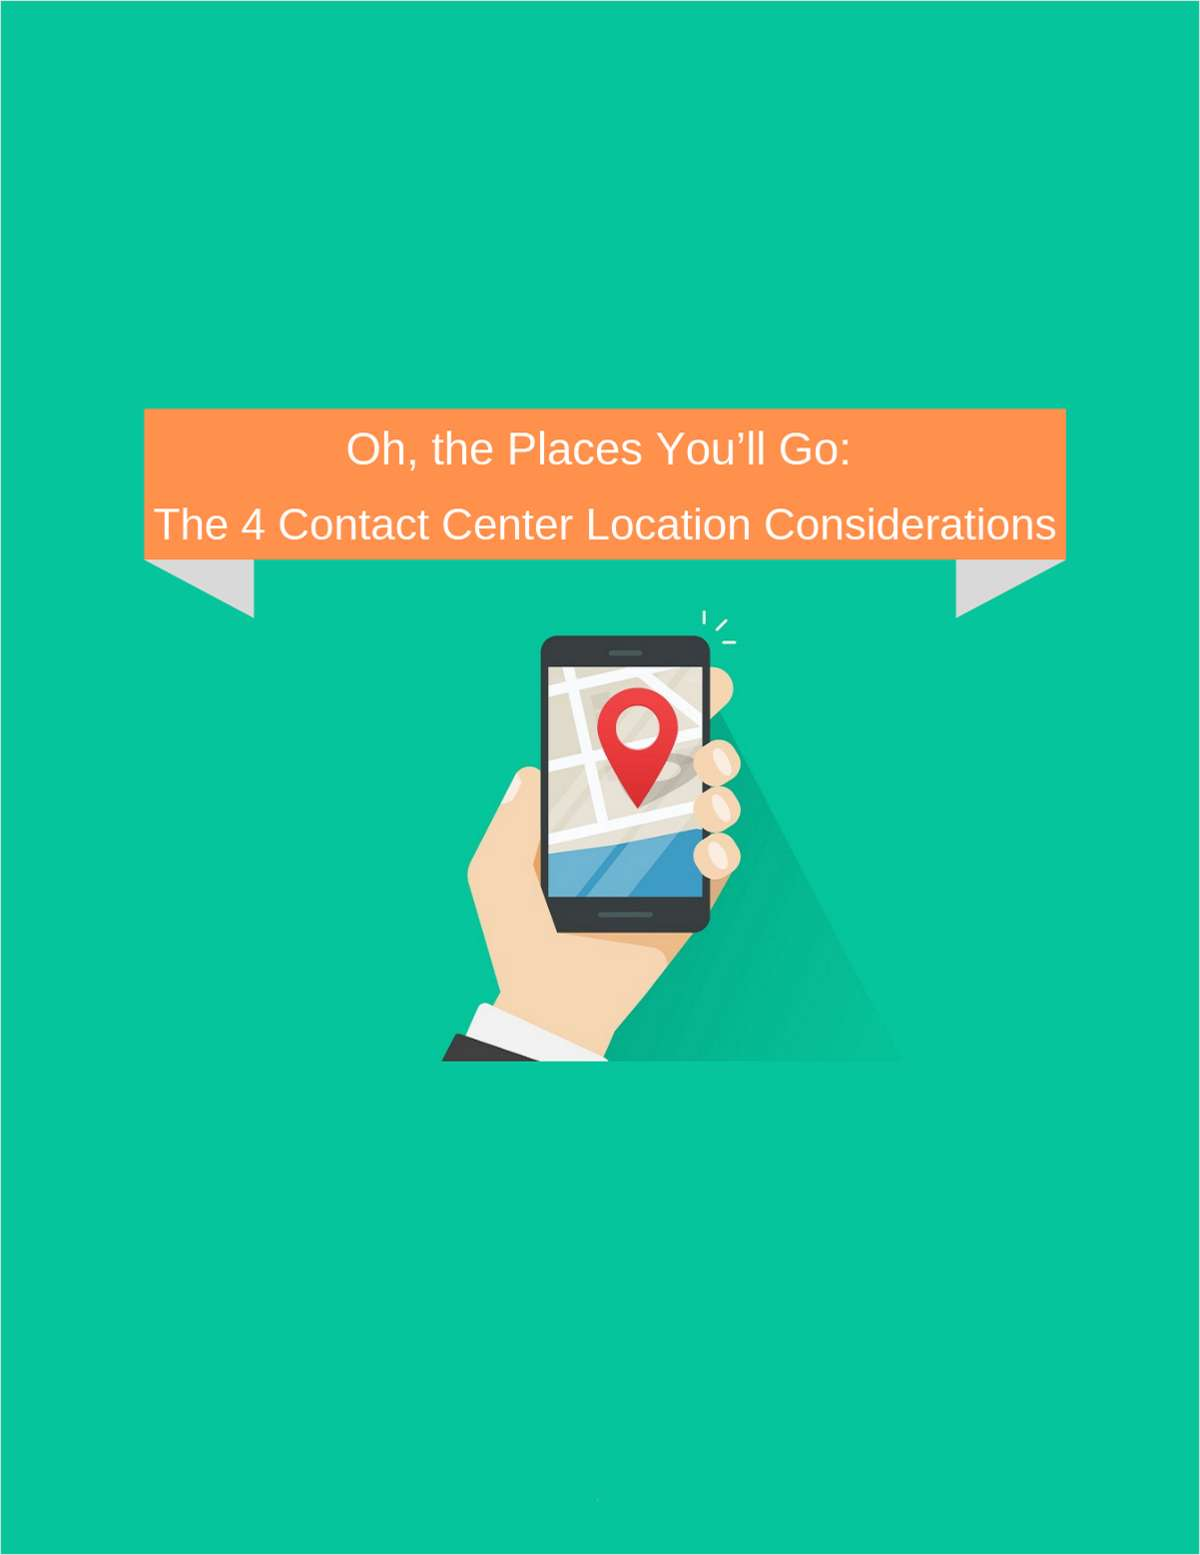 Oh, the Places You'll Go: The 4 Contact Center Location Considerations